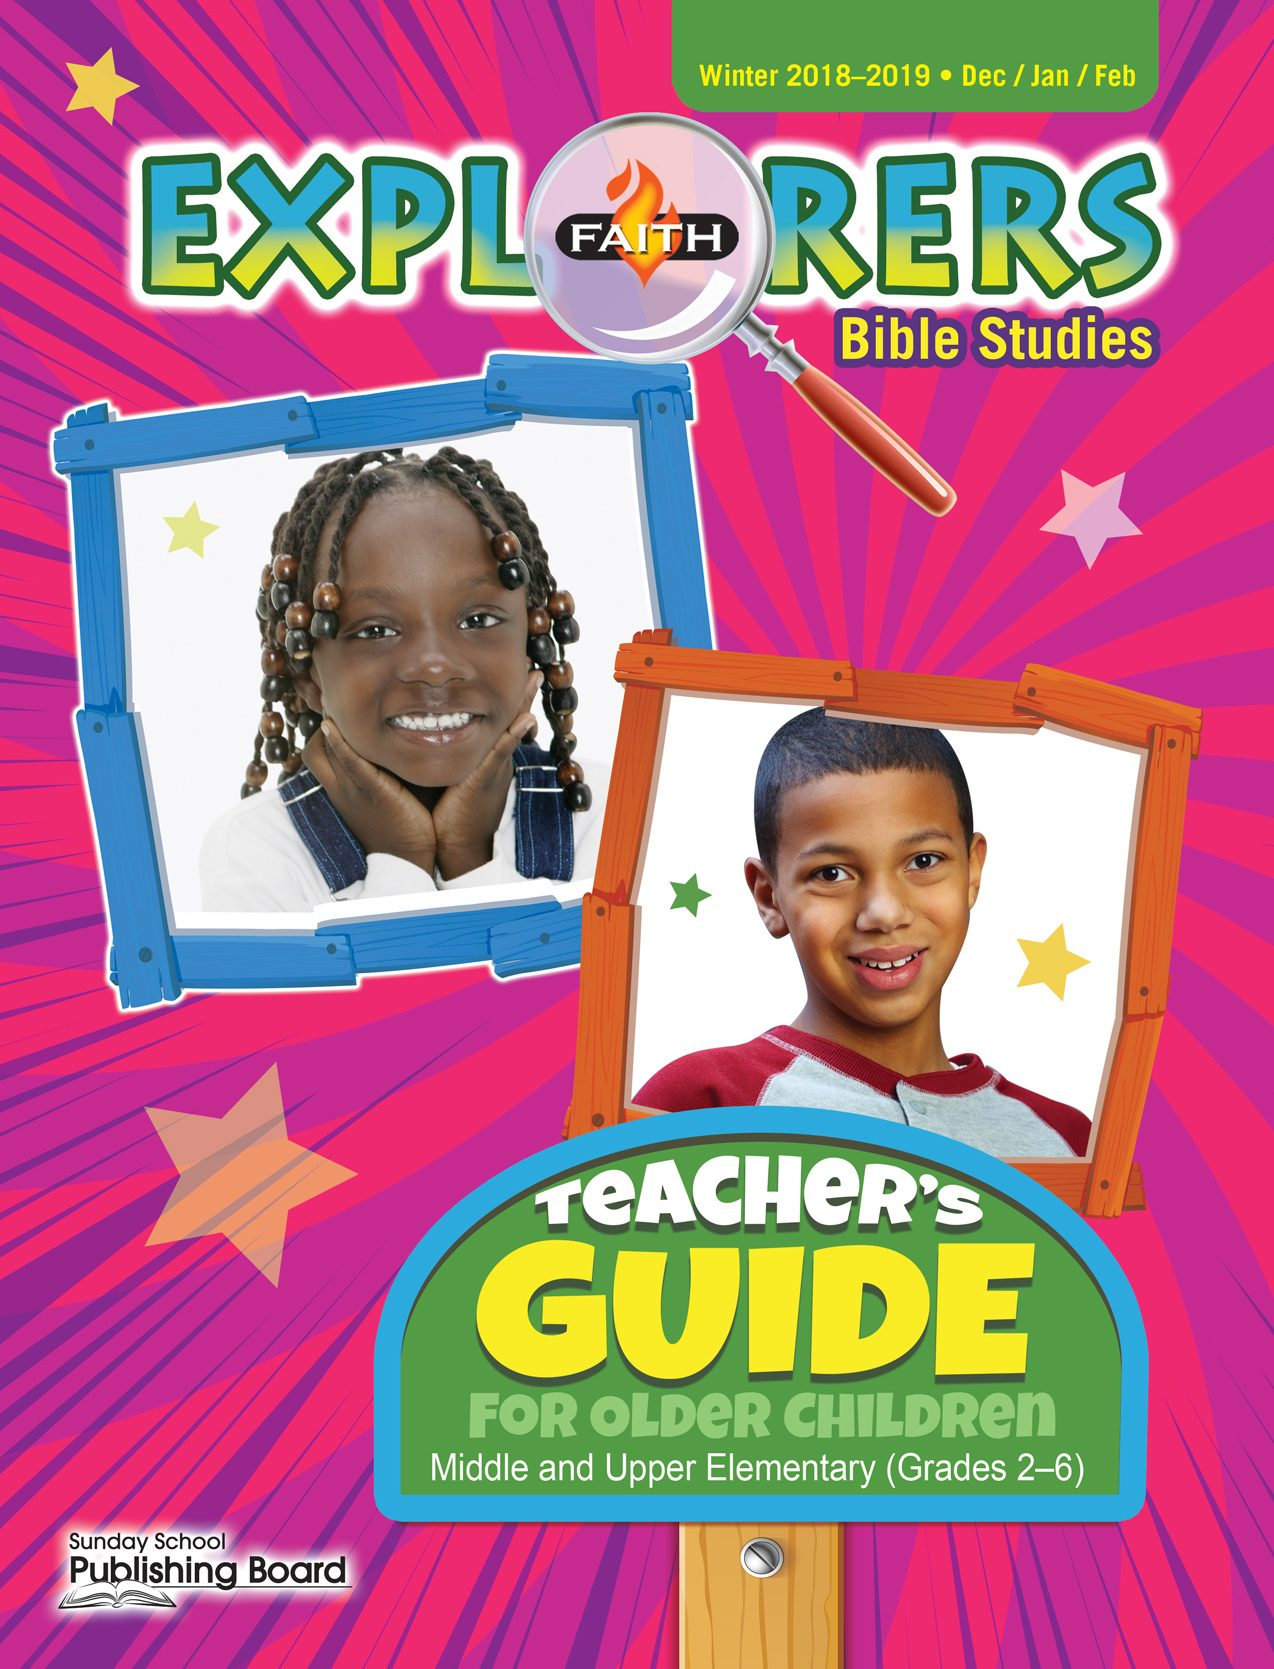 Faith Explorers Teacher's Guide for Grades 2-6 (Winter 2018)-Digital Edition